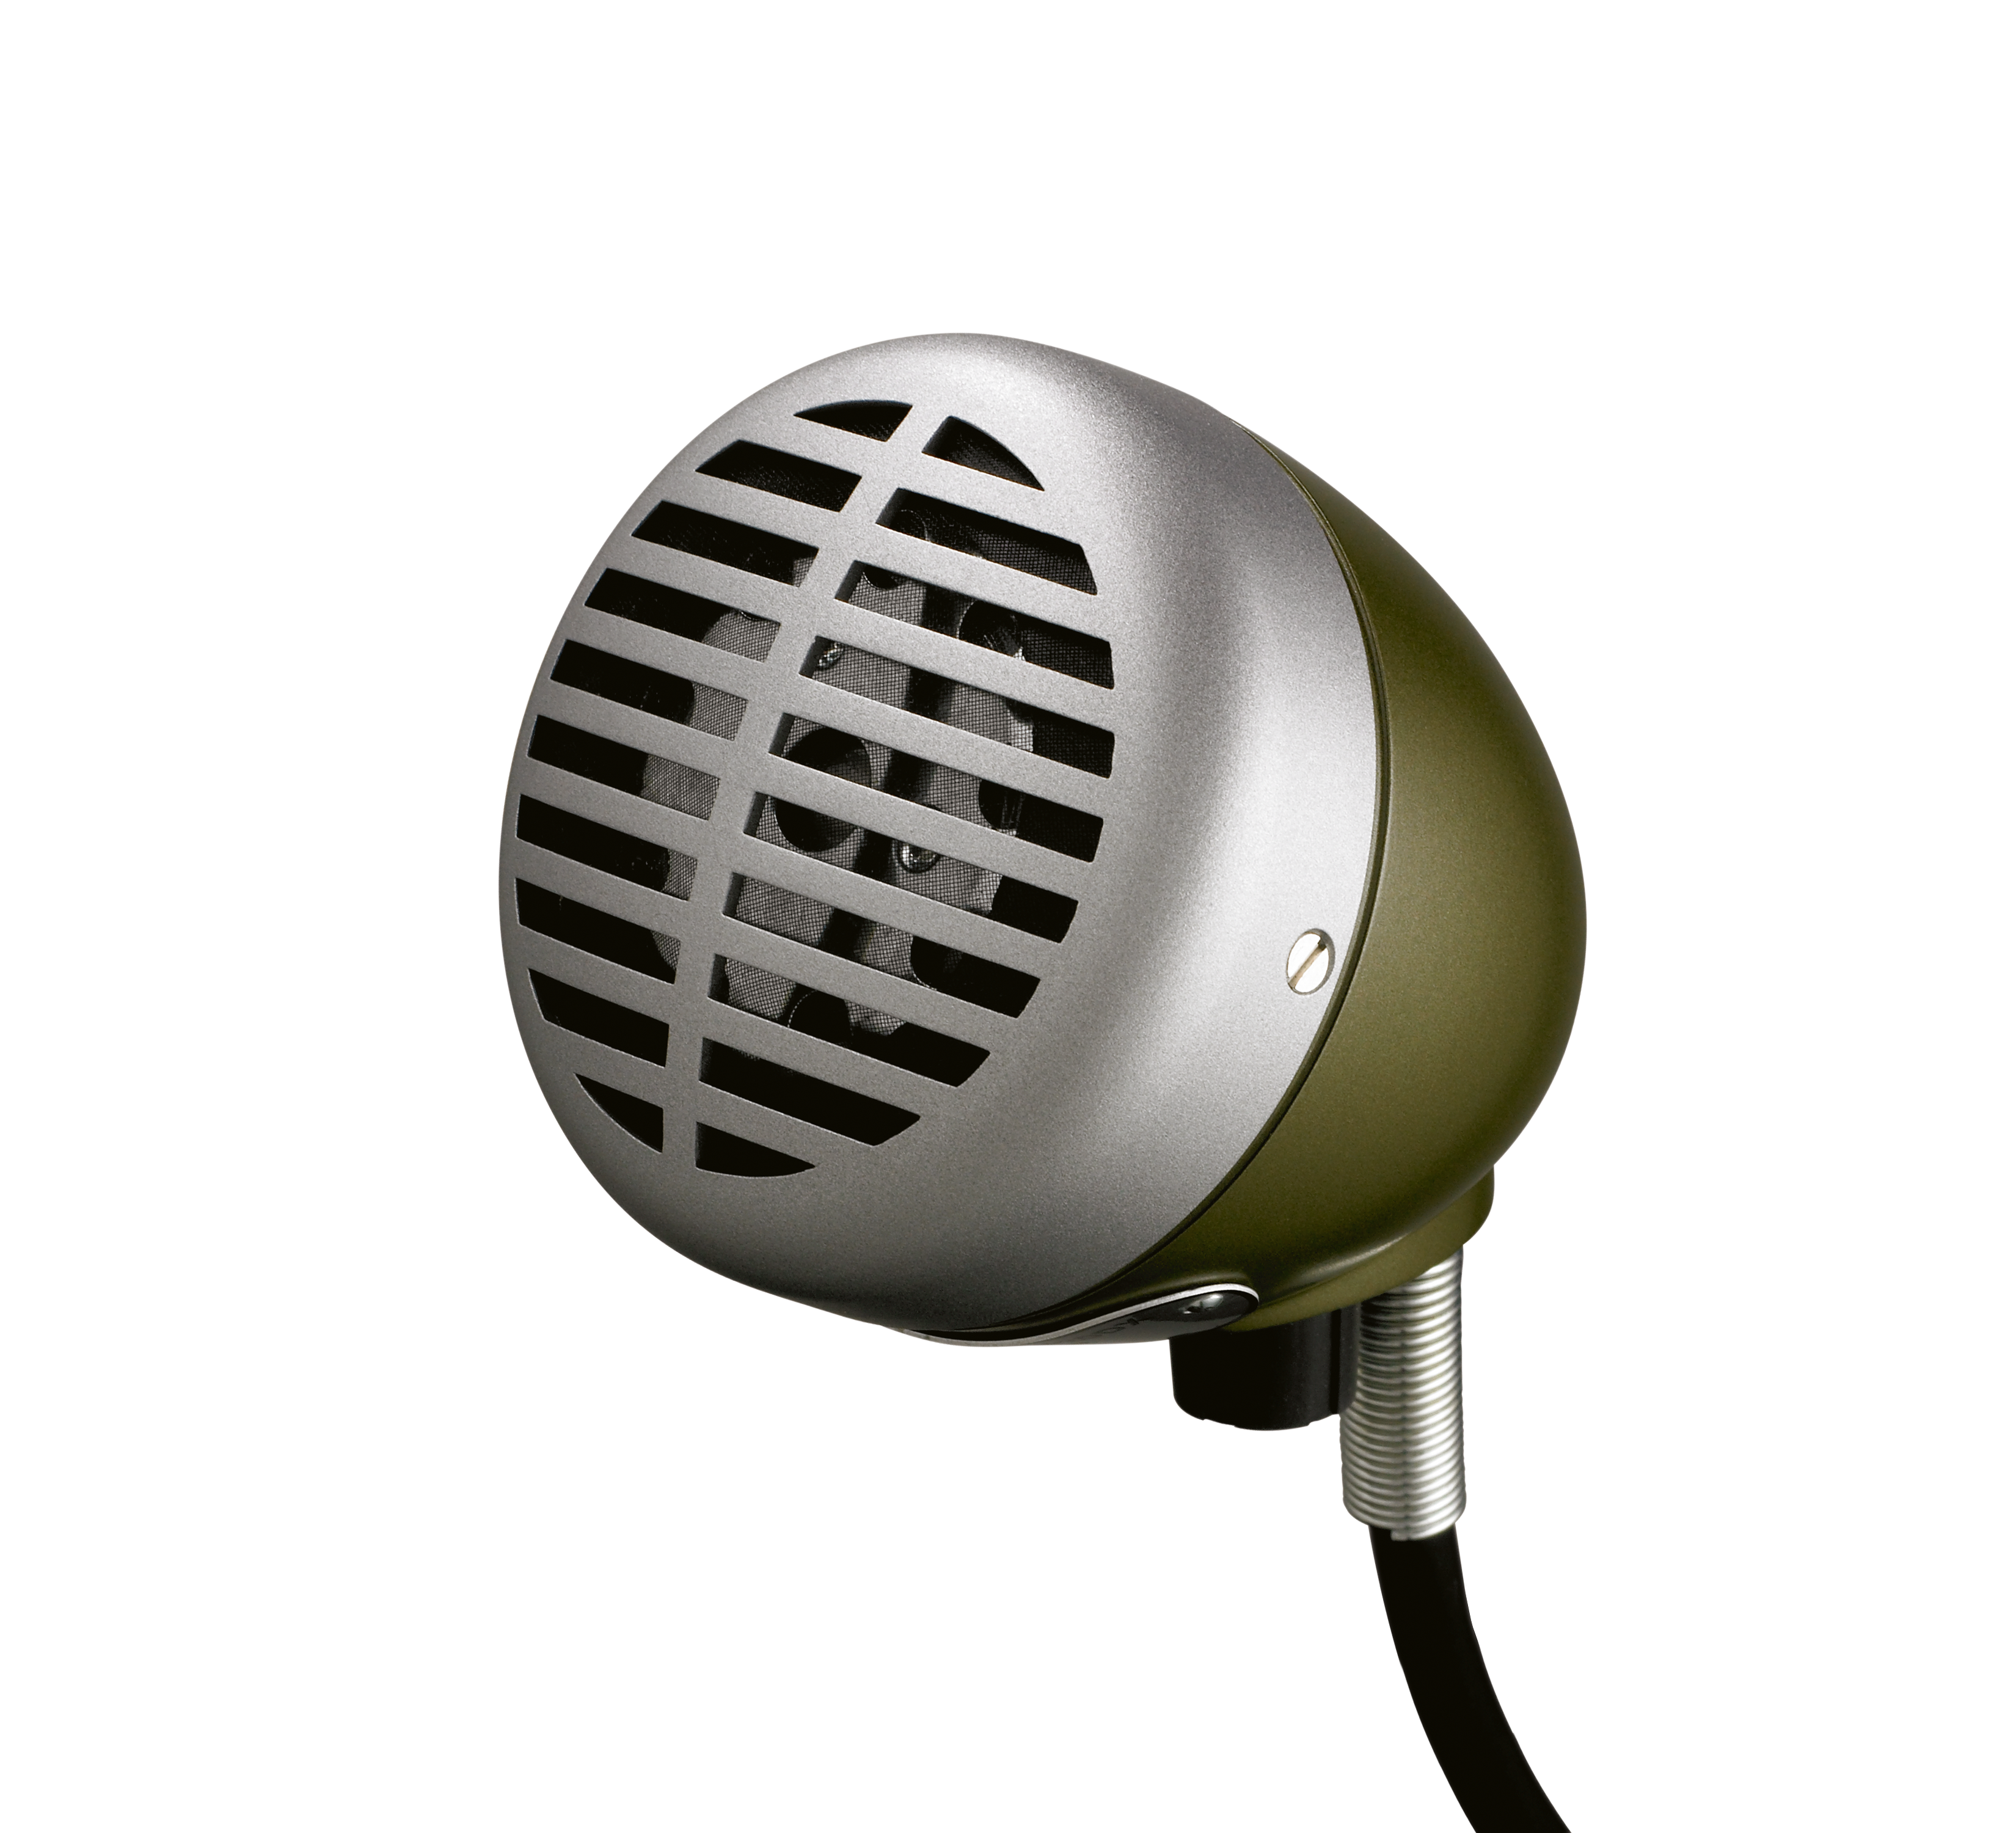 Illustration Shure Microphone for Harmonica